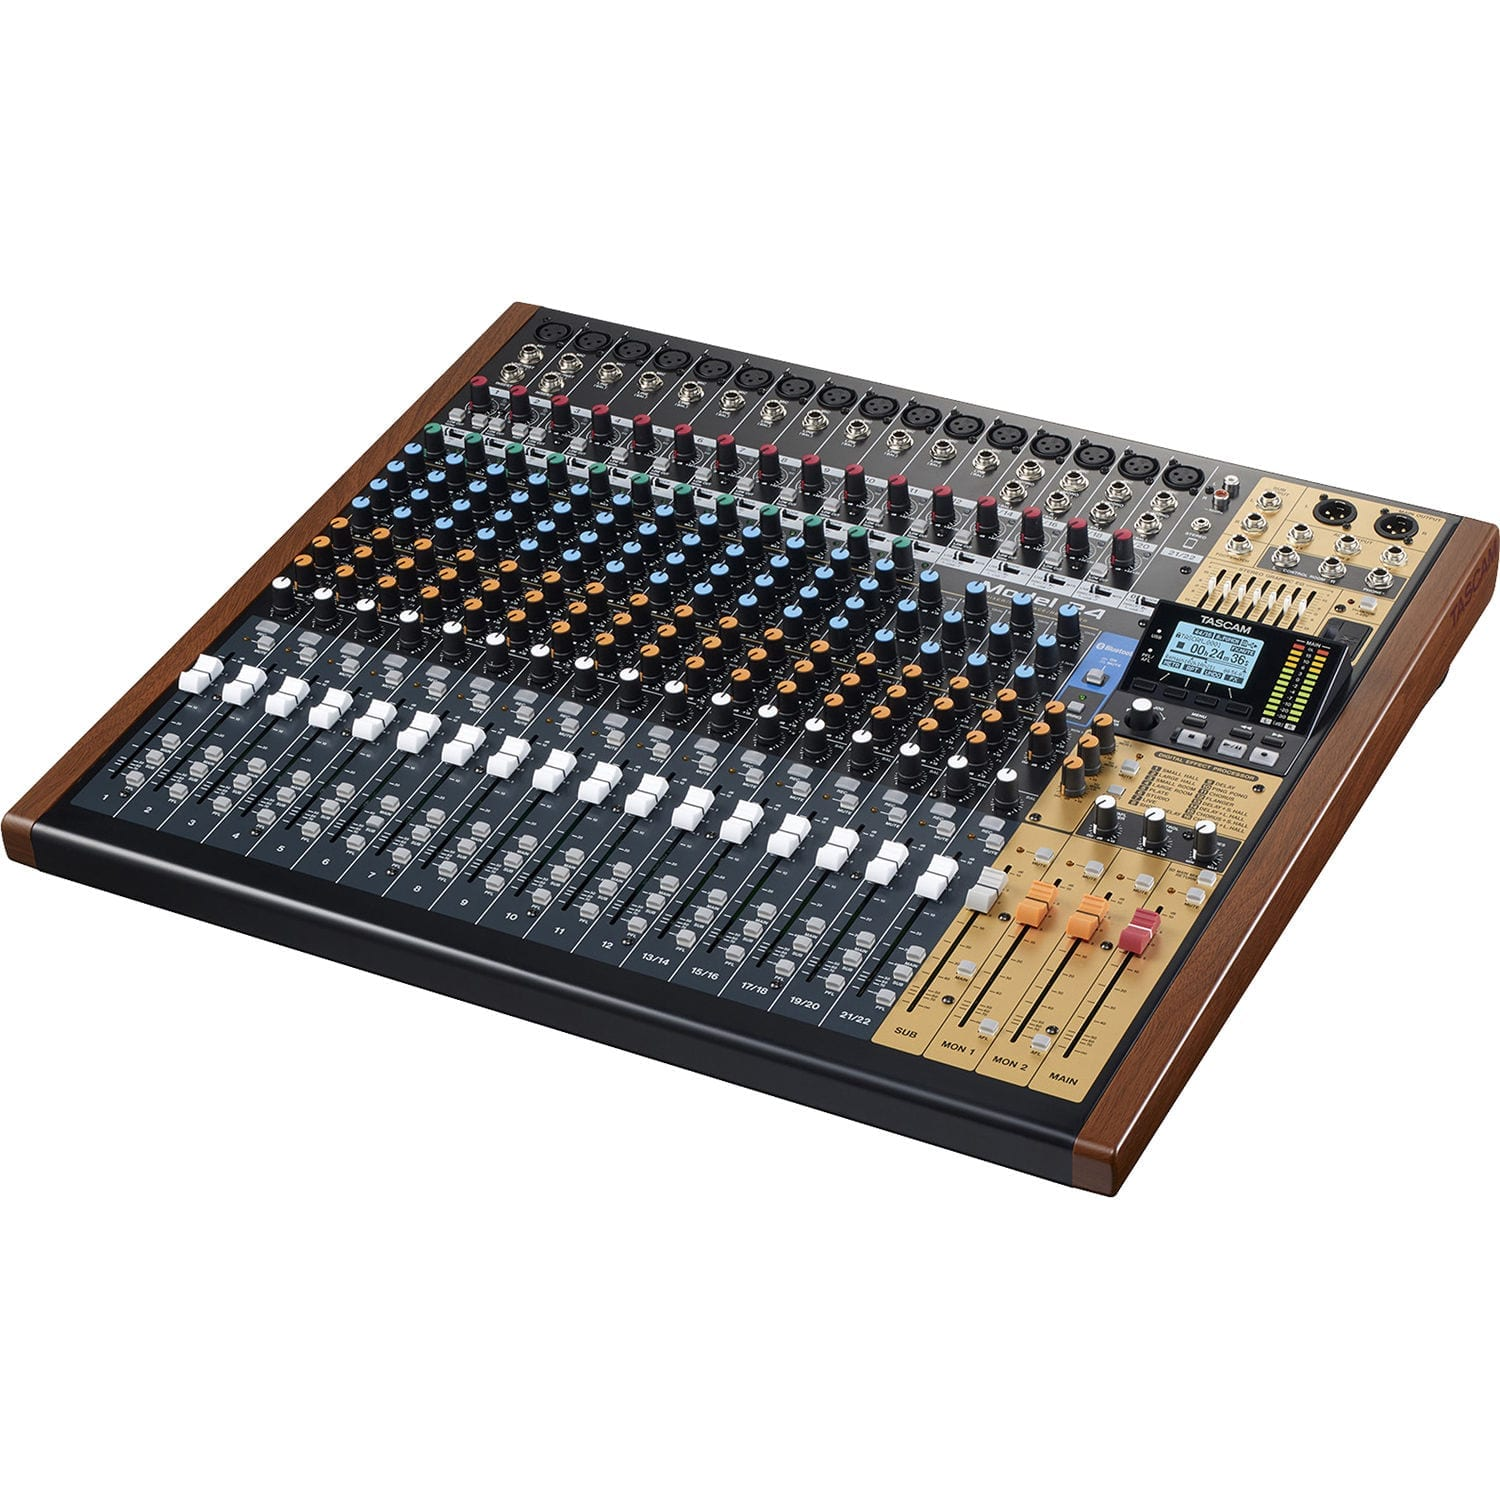 tascam model 24 digital mixer recorder and usb audio interface tascam th 07 high. Black Bedroom Furniture Sets. Home Design Ideas